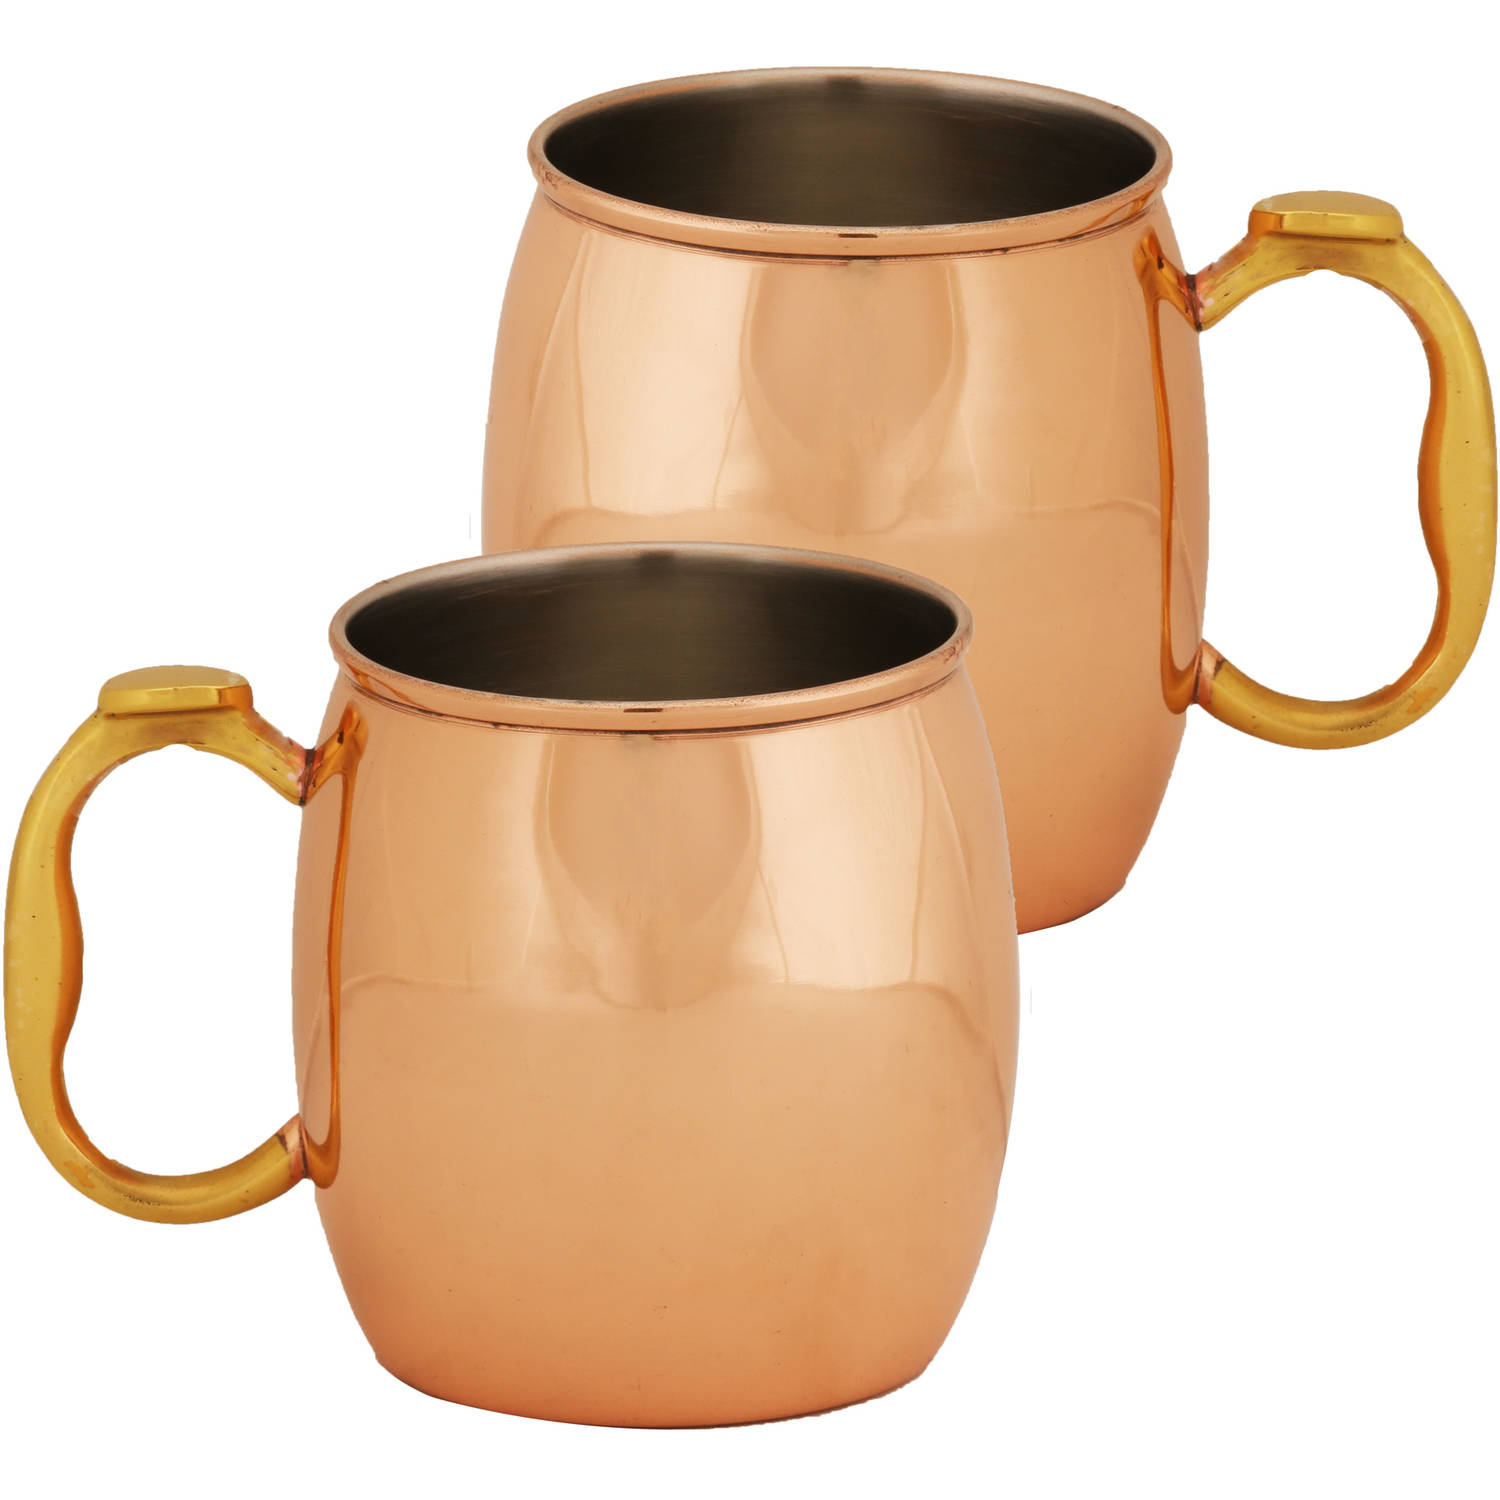 10 Strawberry Street 20 oz Copper Mug, Set of 2